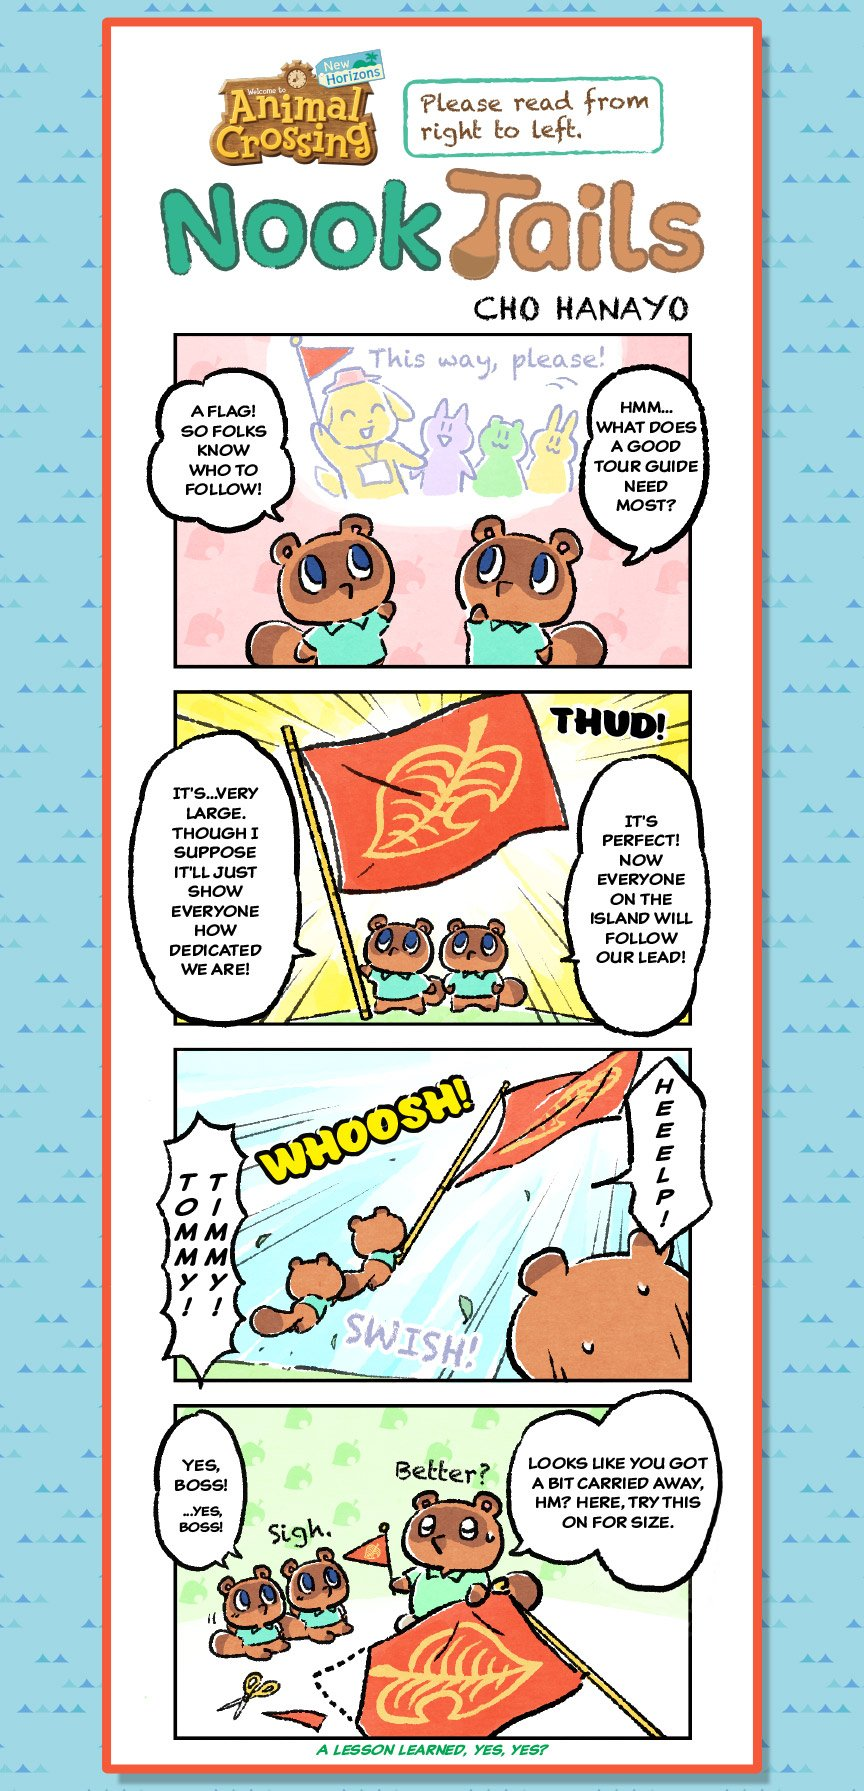 """Nook Tails, an Animal Crossing: New Horizons comic strip. In the first panel, Timmy and Tommy are talking. One says: """"Hmm…what does a good tour guide need most?"""" The other responds: """"A flag! So folks know who to follow!"""" In the second panel, there is a bi"""